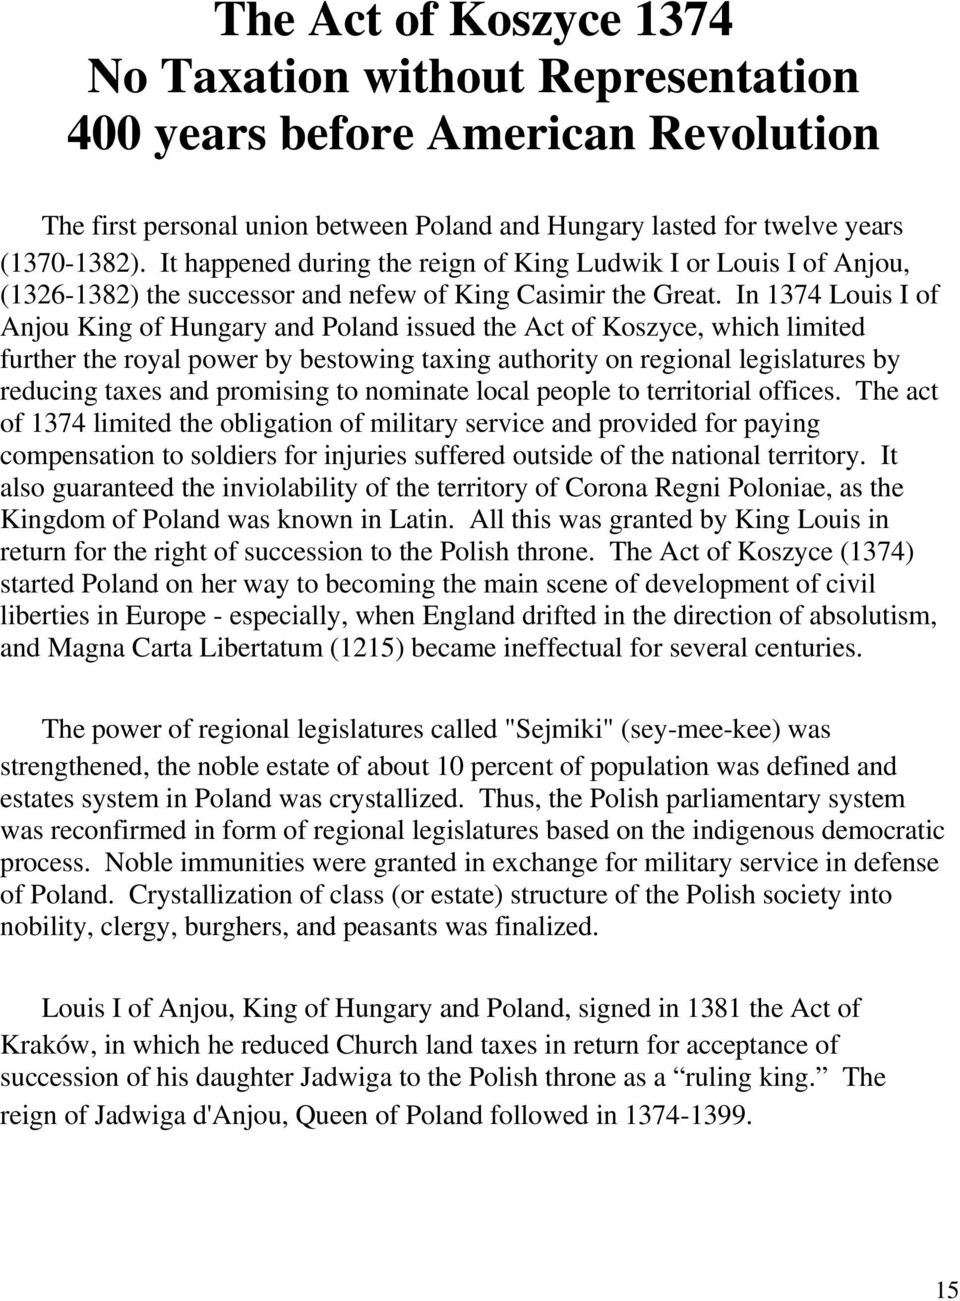 In 1374 Louis I of Anjou King of Hungary and Poland issued the Act of Koszyce, which limited further the royal power by bestowing taxing authority on regional legislatures by reducing taxes and